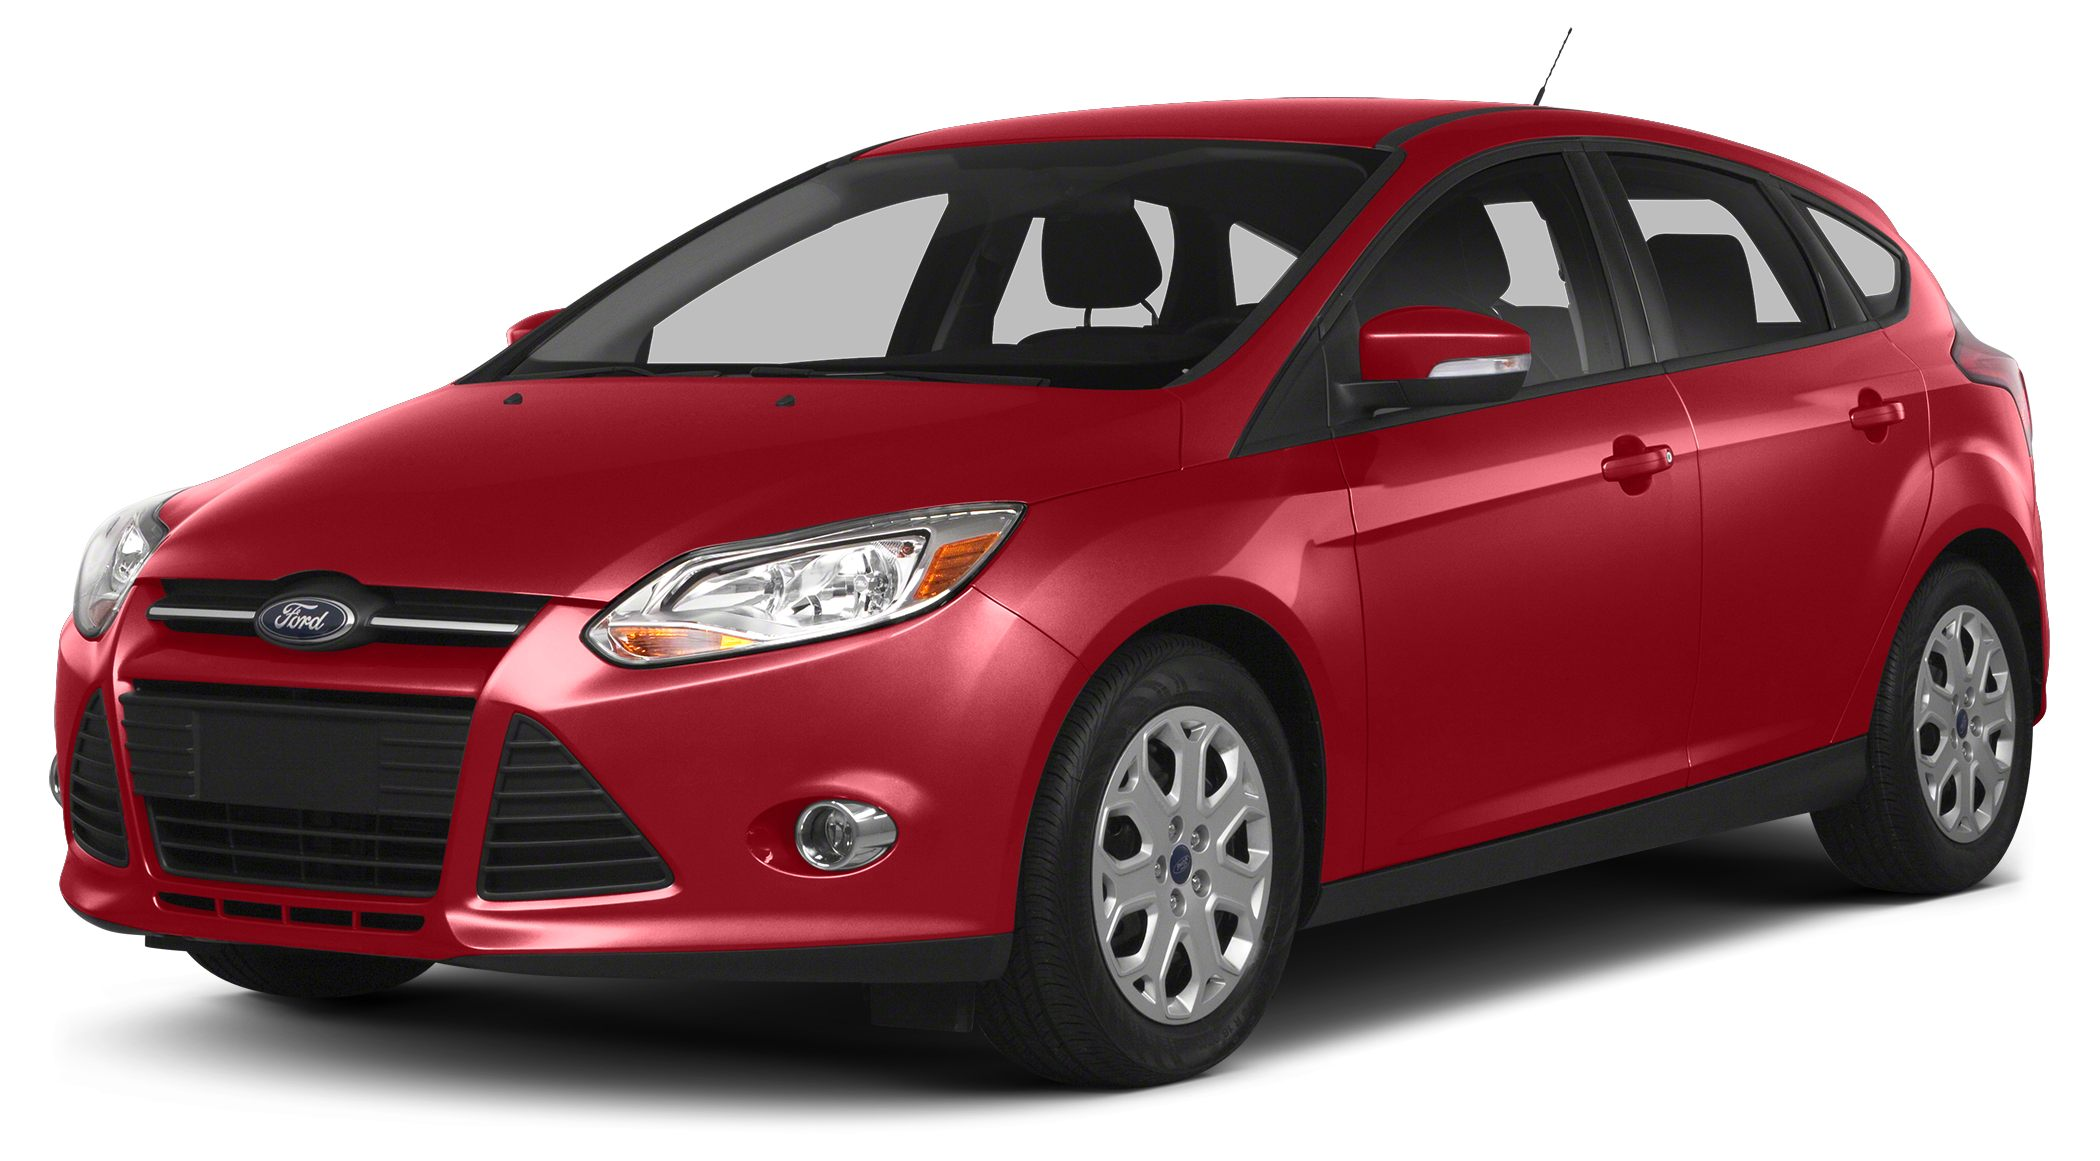 2014 Ford Focus SE HATCHBACK AUTOMATIC TRANSMISSION SYNC WMY FORD RUBY RED METALLIC REAR SPOI